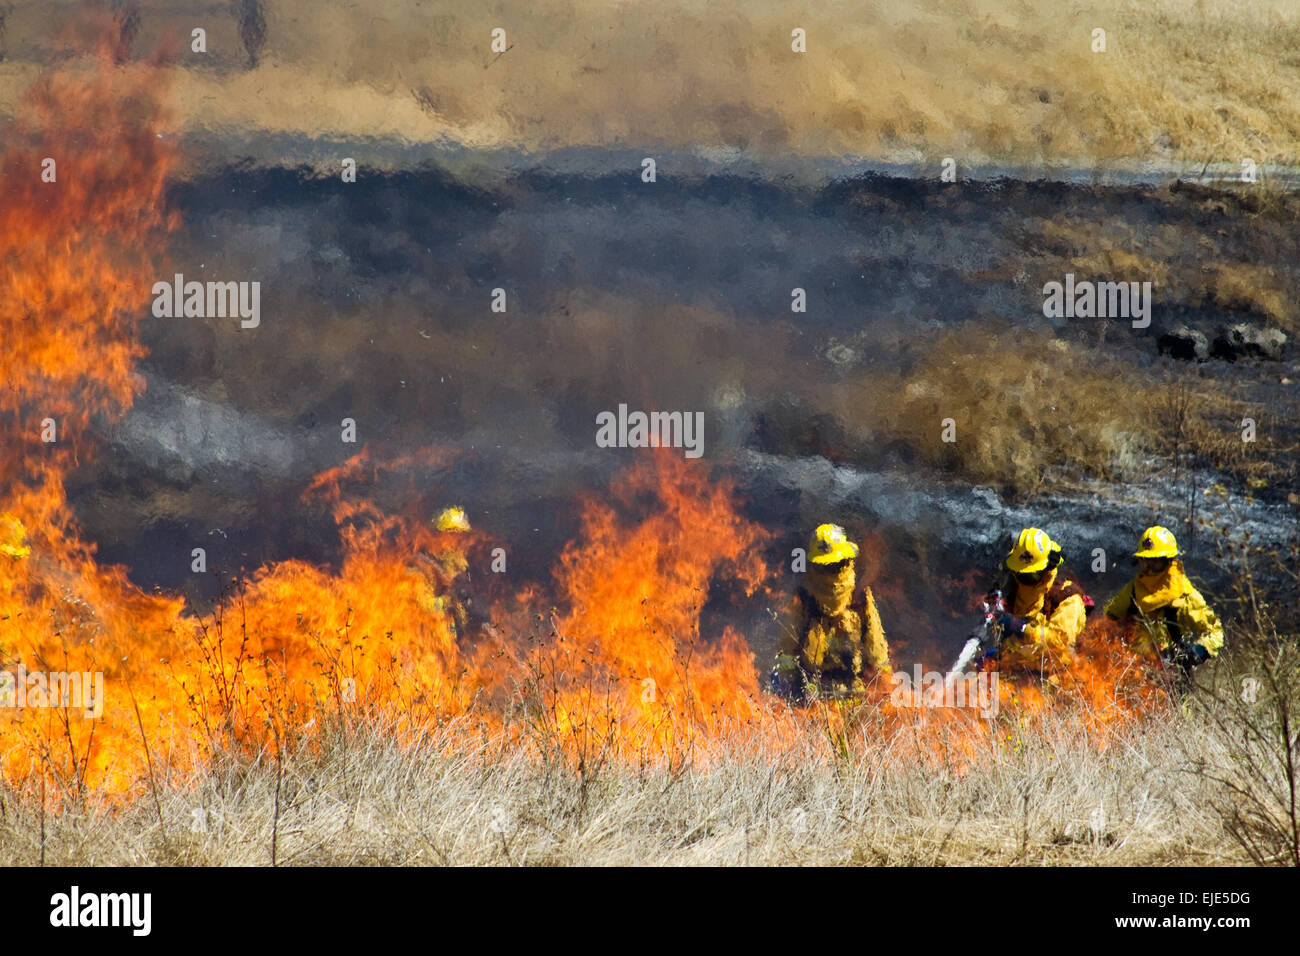 Firefighter Fighting Fire - Stock Image